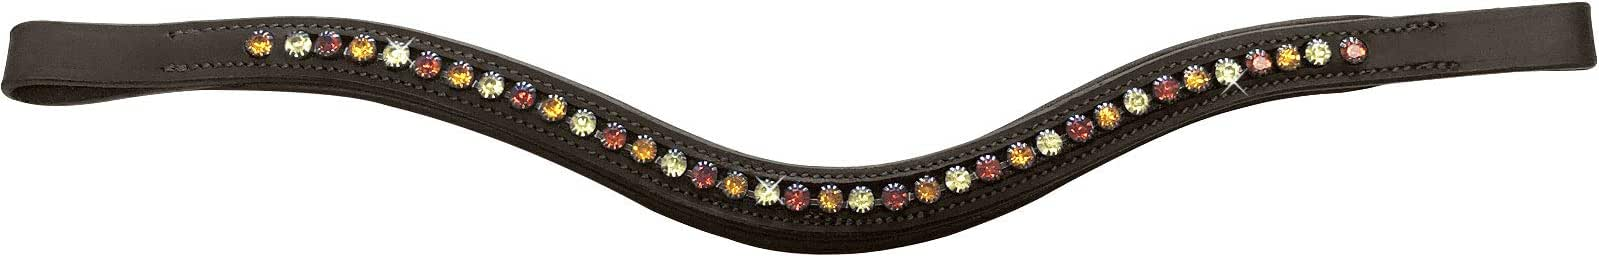 Tigerbox Sparkle Wave Horse Browband with Softy Leather Padding Diamante Crystal Detail